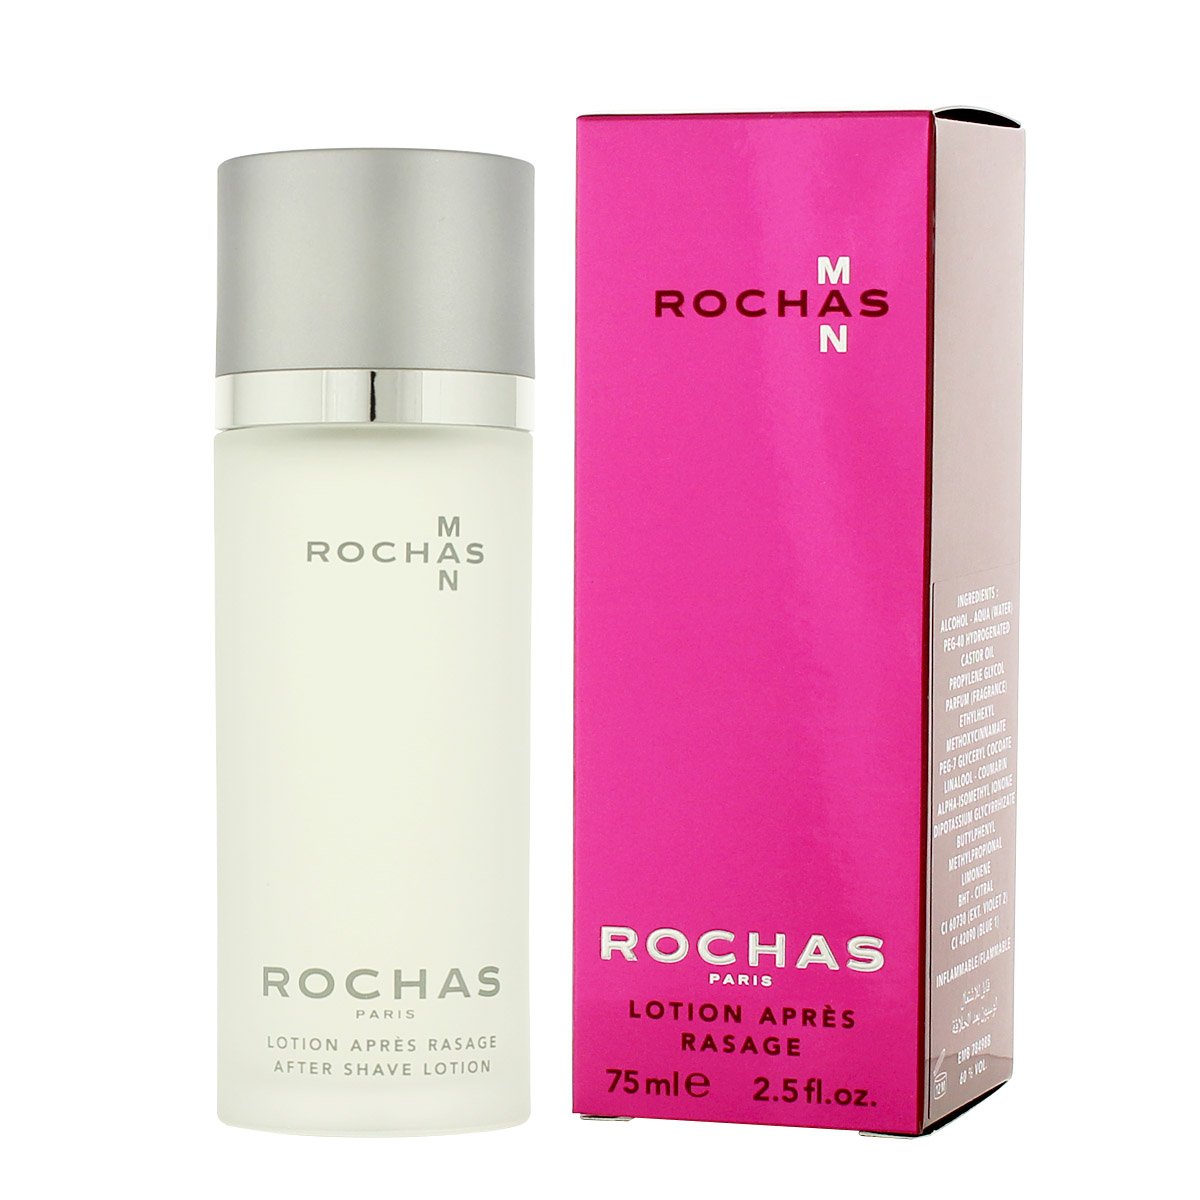 Rochas Rochas Man AS 75 ml M